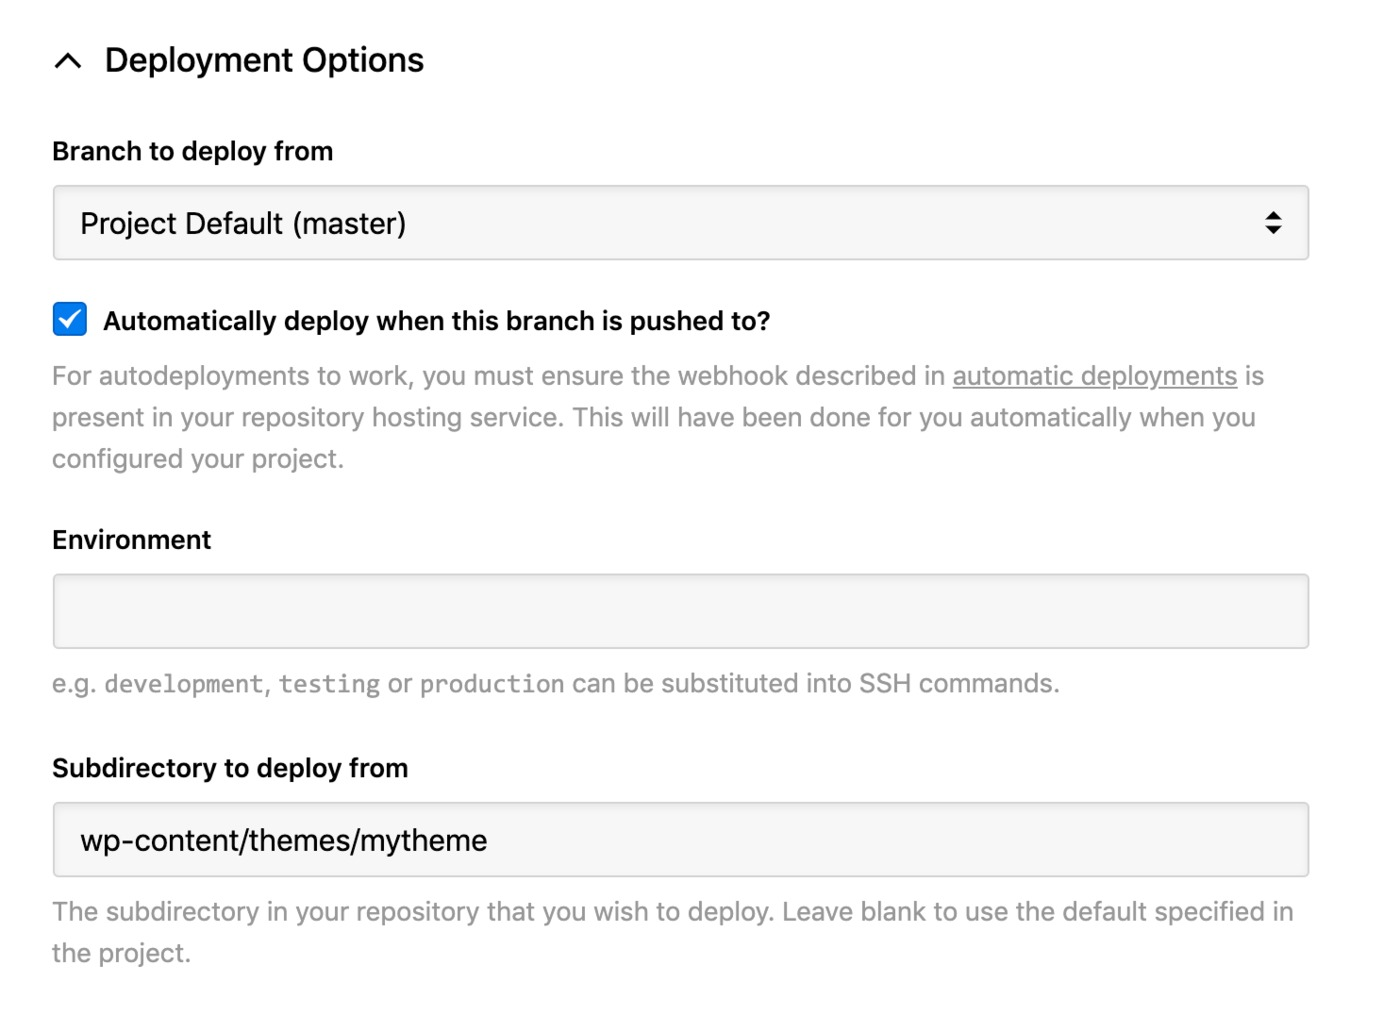 GoDaddy - deployment options